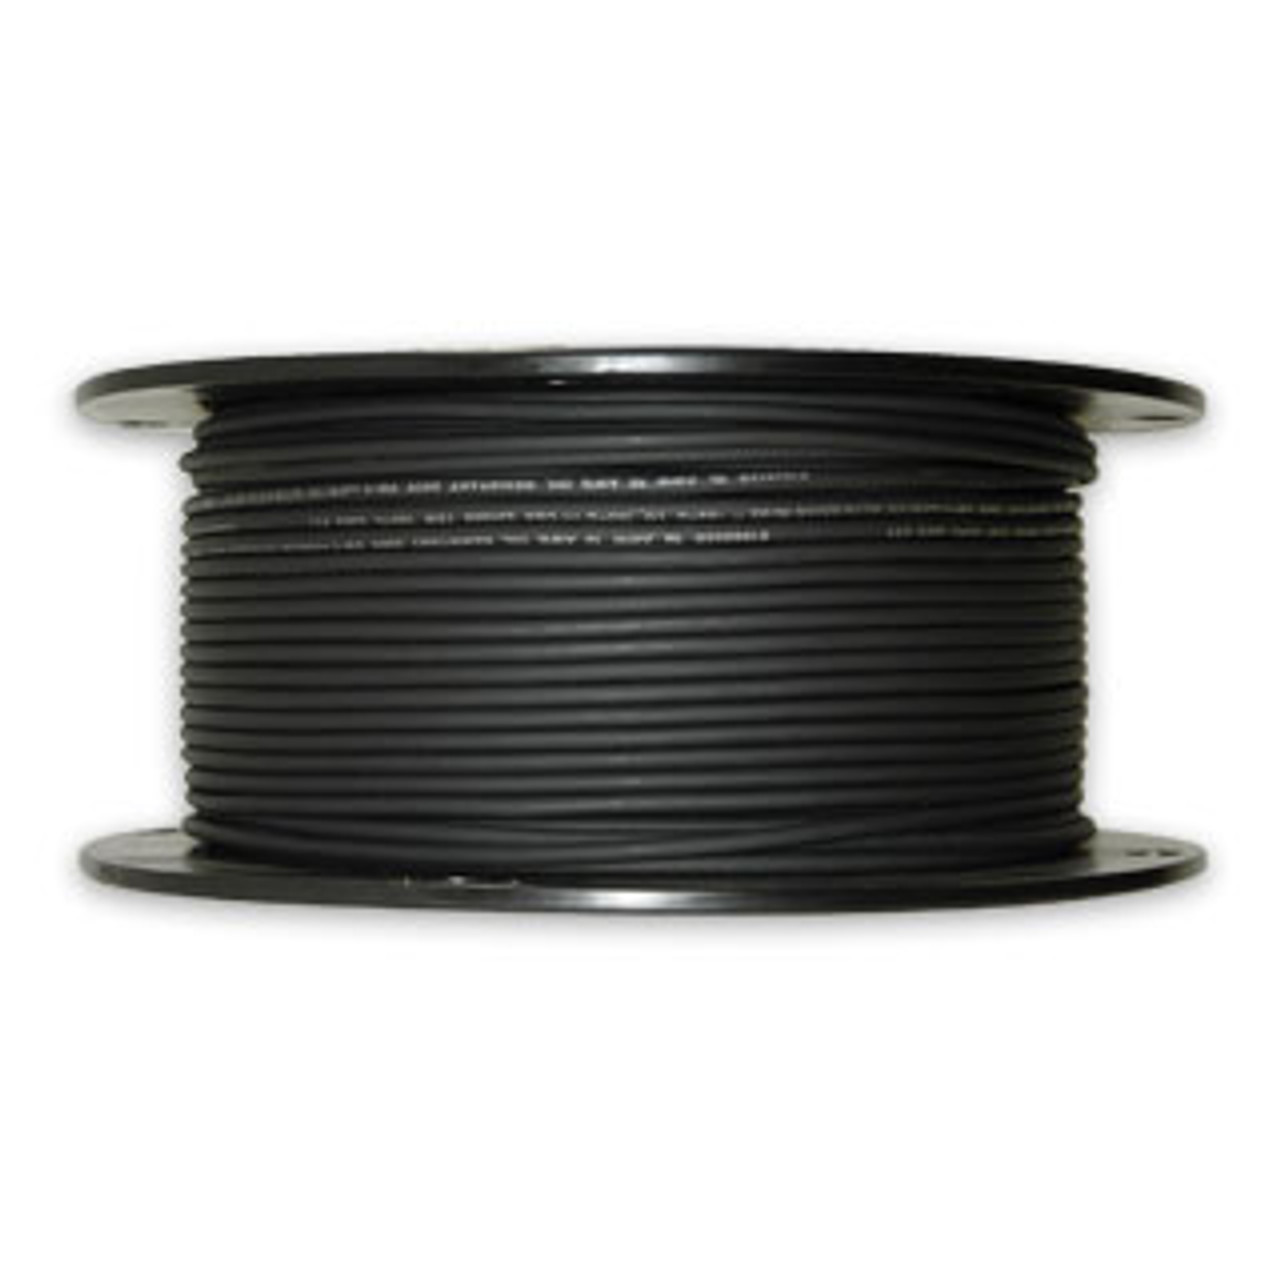 Arctic Ultraflex Cold Weather Flexible Wire 500 Foot Spool 12 AWG Black Single Conductor Wire tinned fine strand 100% copper